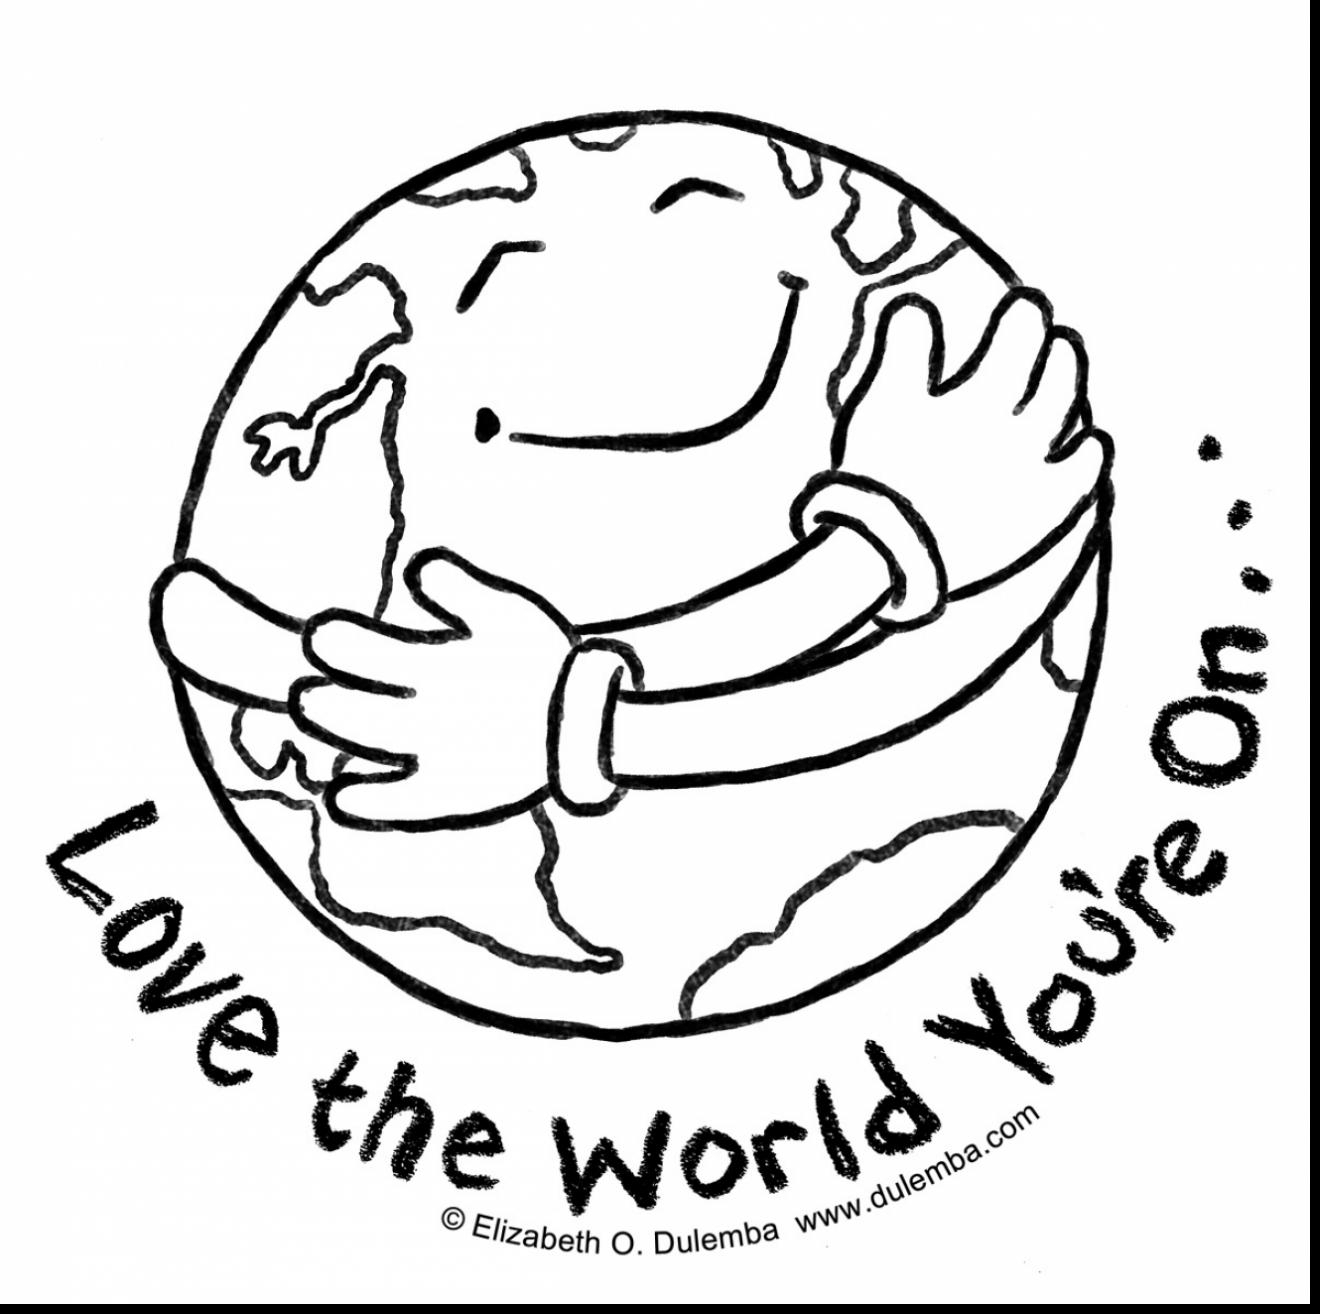 Earth Day Coloring Pages Earth Day Coloring Pages Pdf At Getdrawings Free For Personal